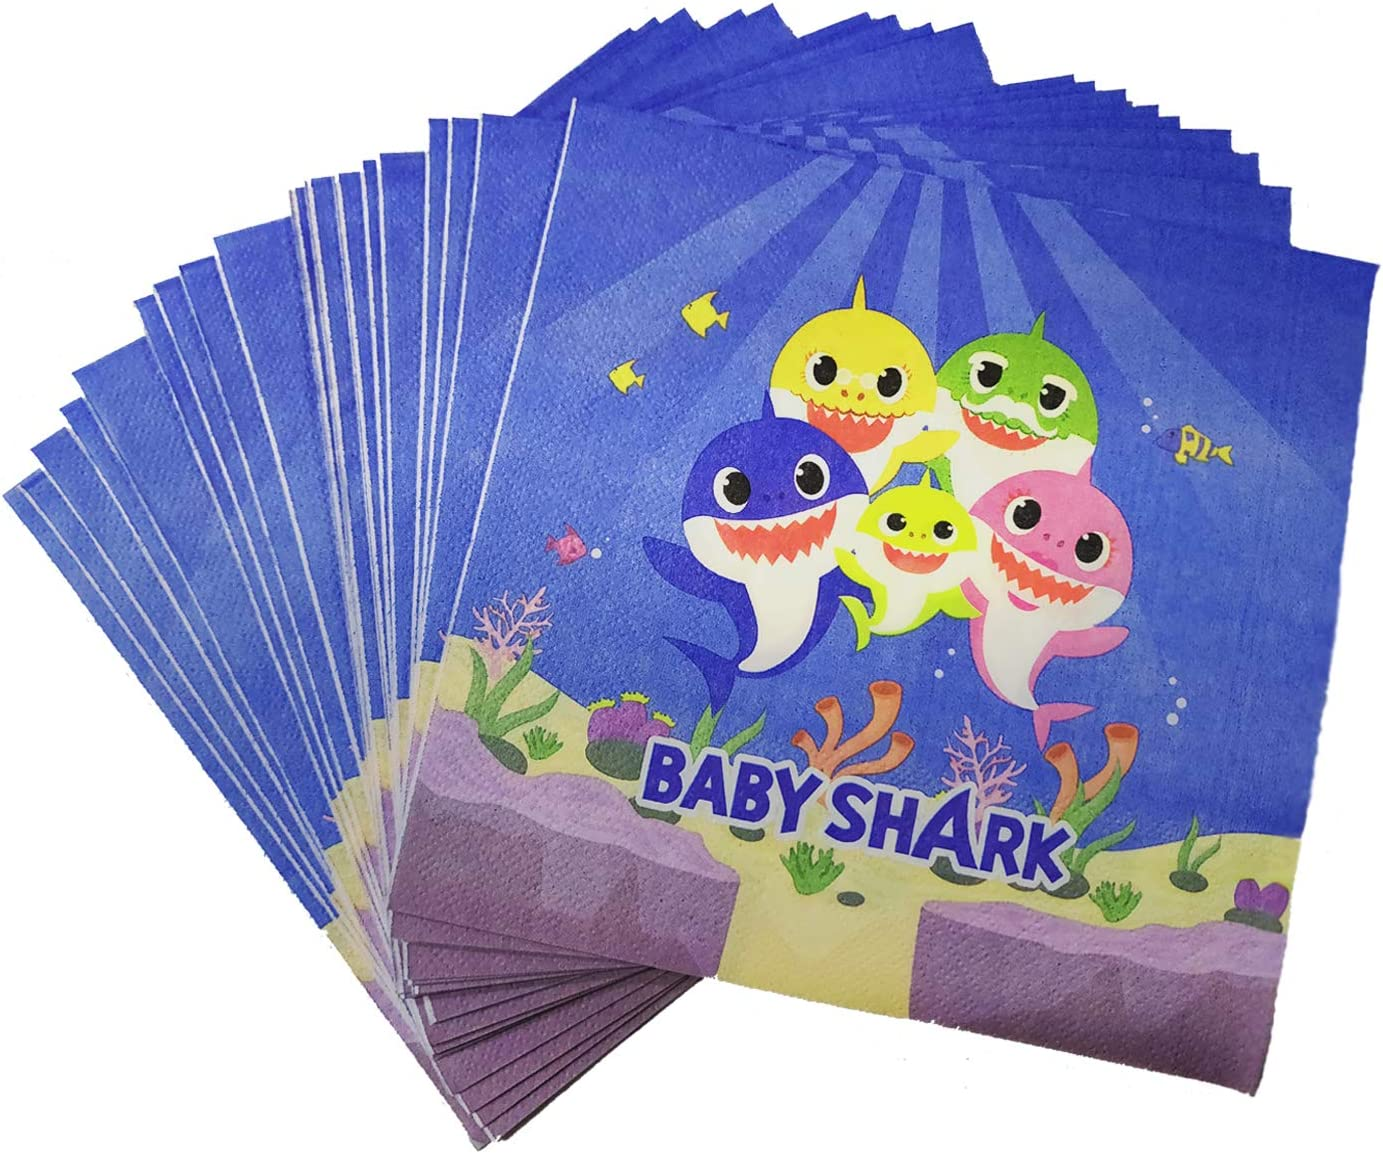 40 Pcs Baby Napkins, Baby Dessert Tableware Disposable Paper Napkins for Baby Shower Kids Birthday Party Decorations Supplies